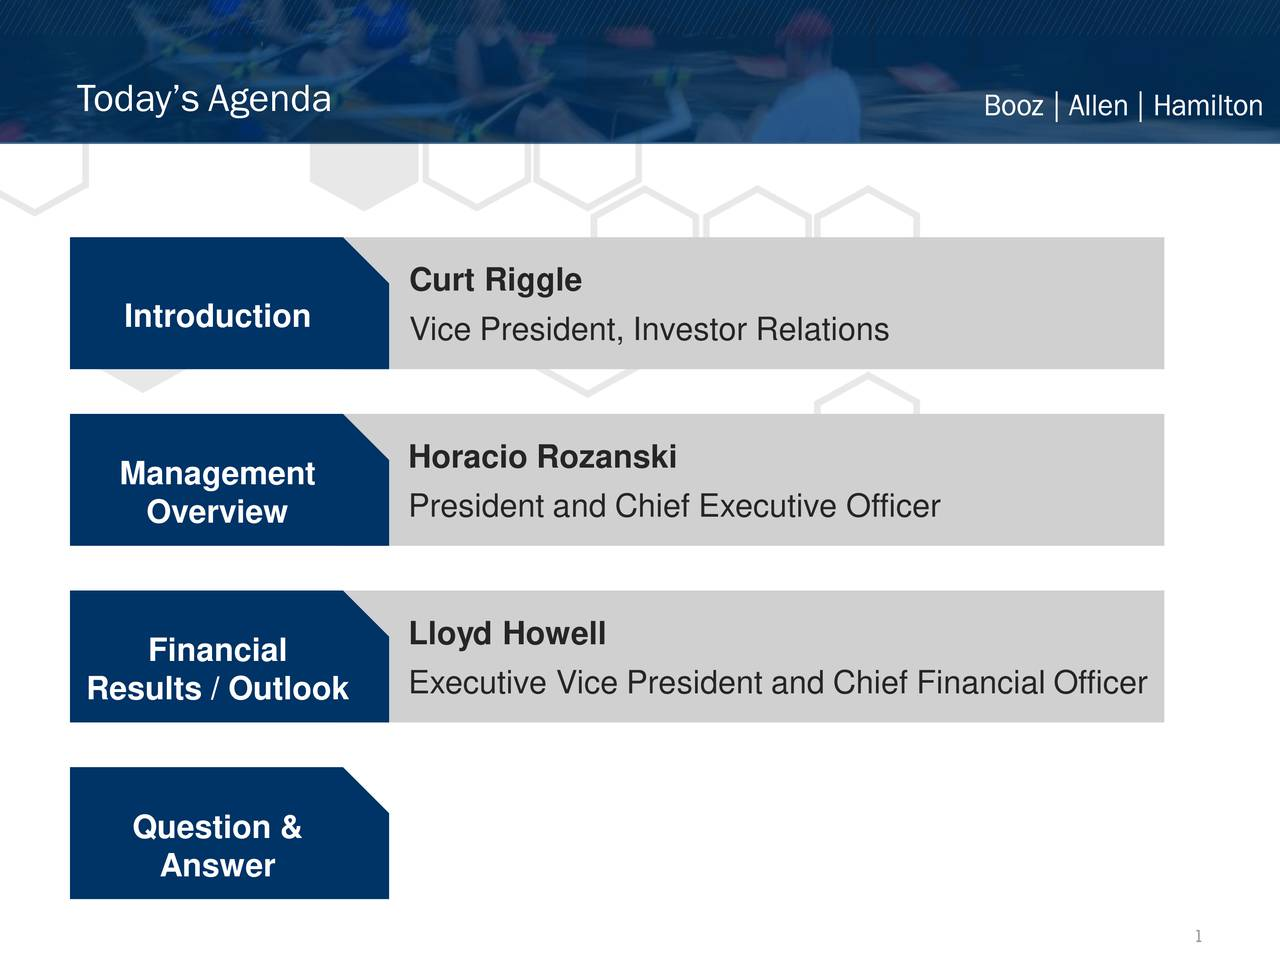 Curt Riggle Introduction Vice President, Investor Relations Management Horacio Rozanski Overview President and Chief Executive Officer Lloyd Howell Financial Results / Outlook Executive Vice President and Chief Financial Officer Question & Answer 1